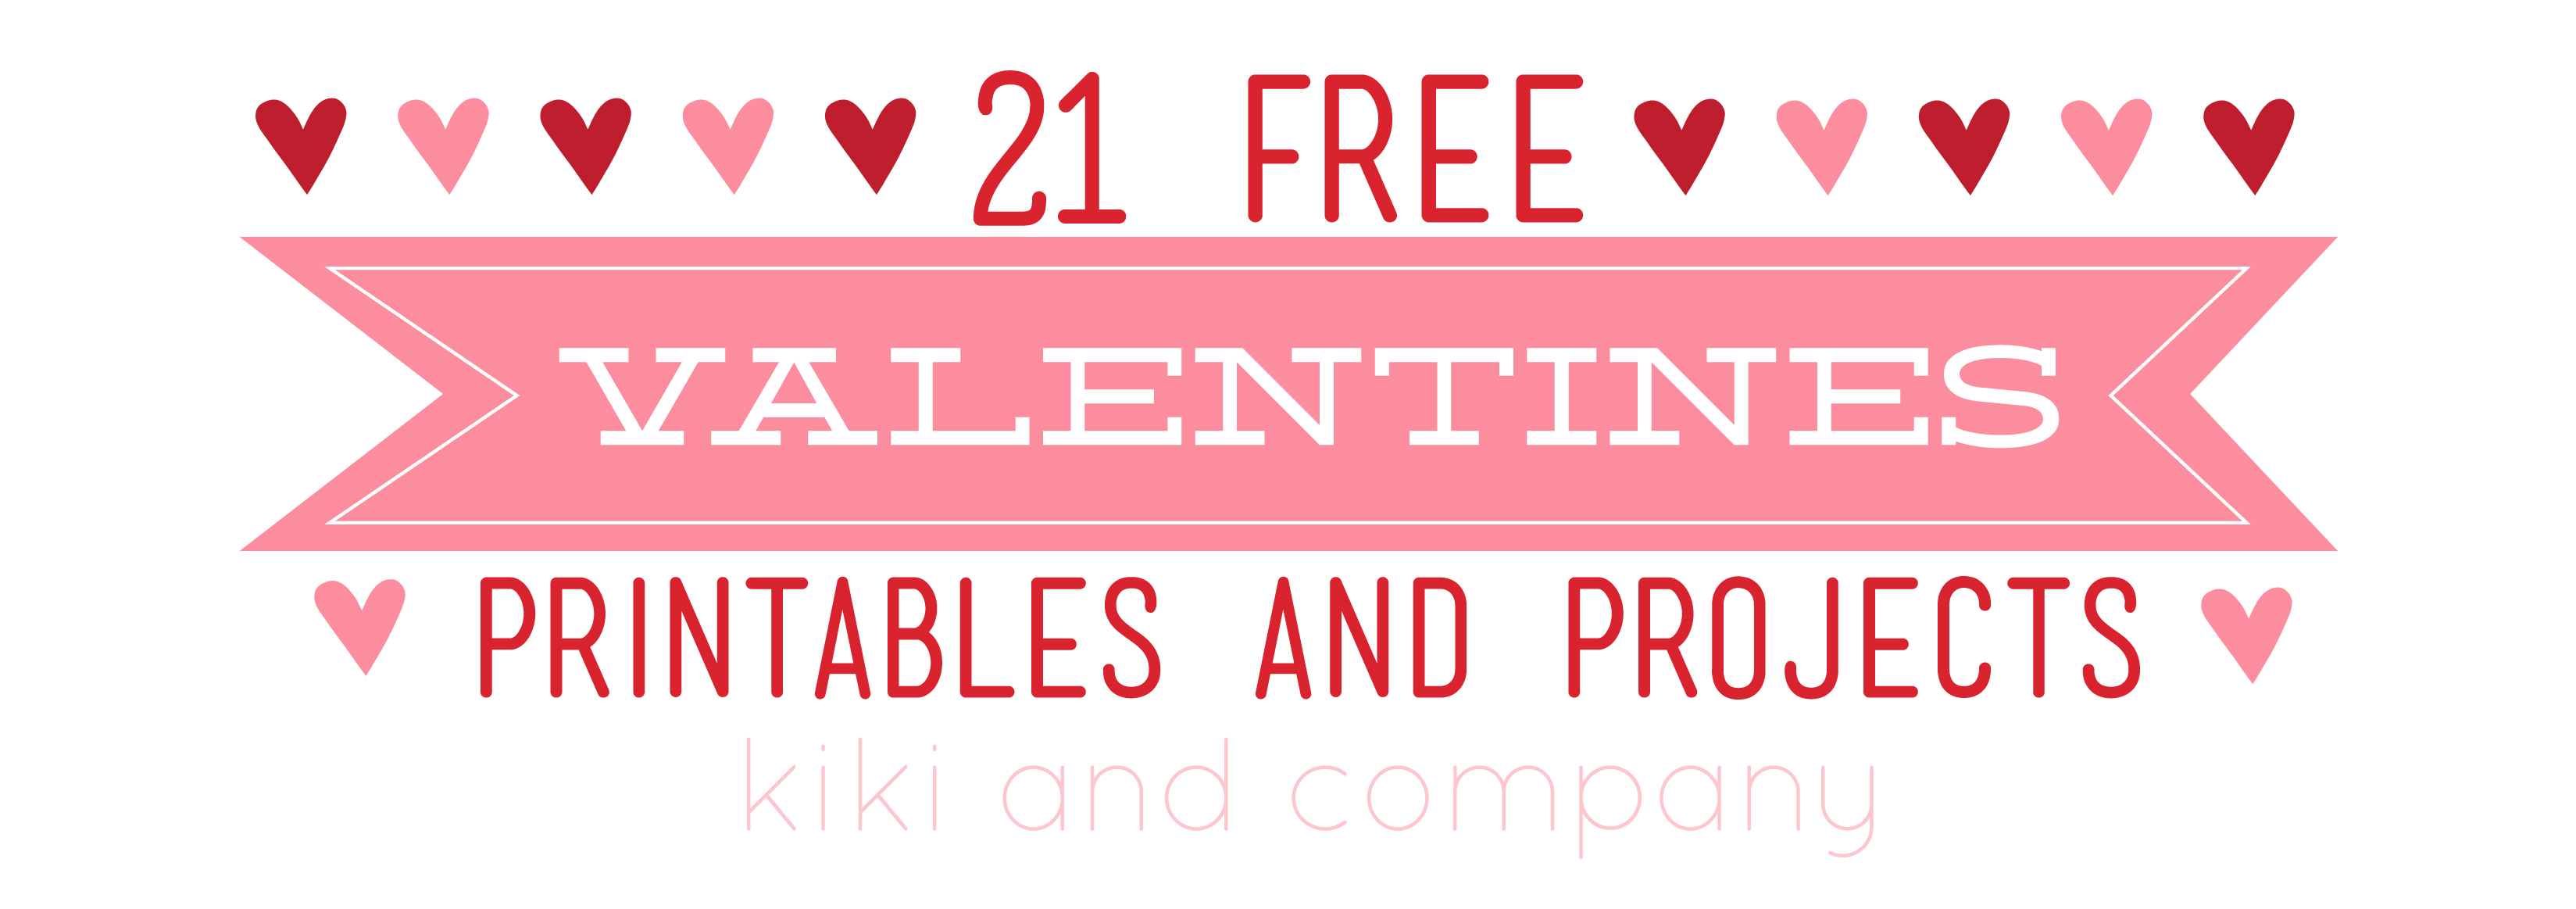 21 Free Valentines Printables And Projects